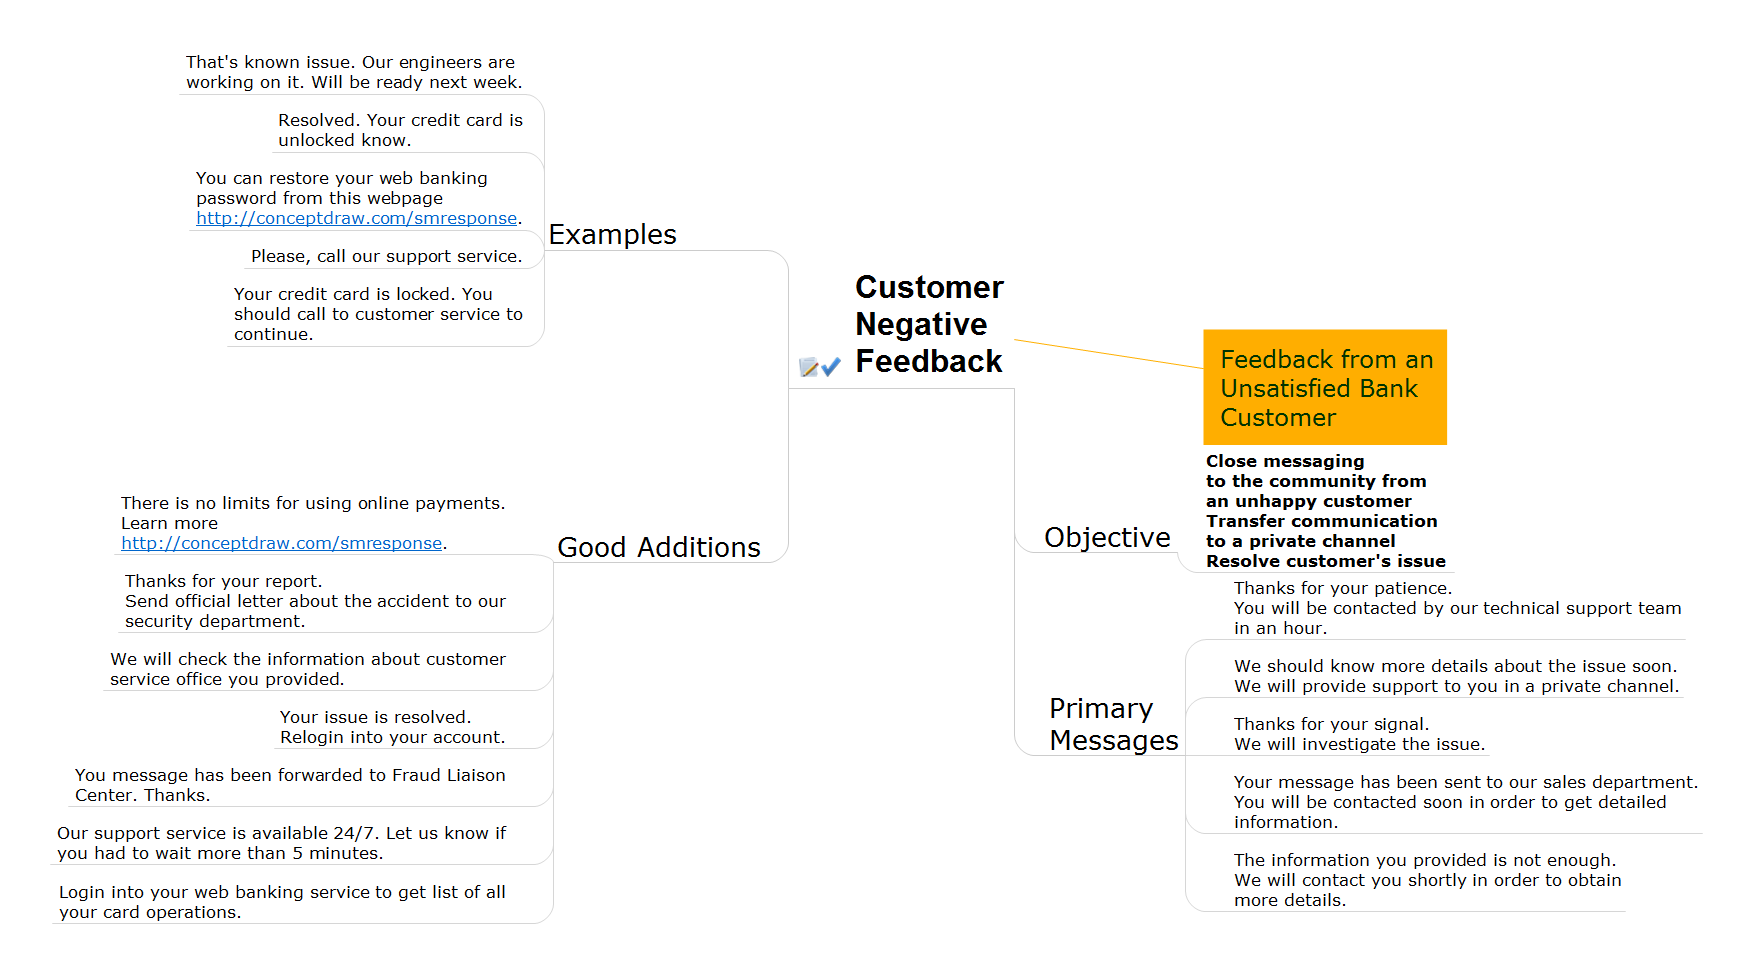 Response to Customer Negative Feedback - Bank customer negative feedback